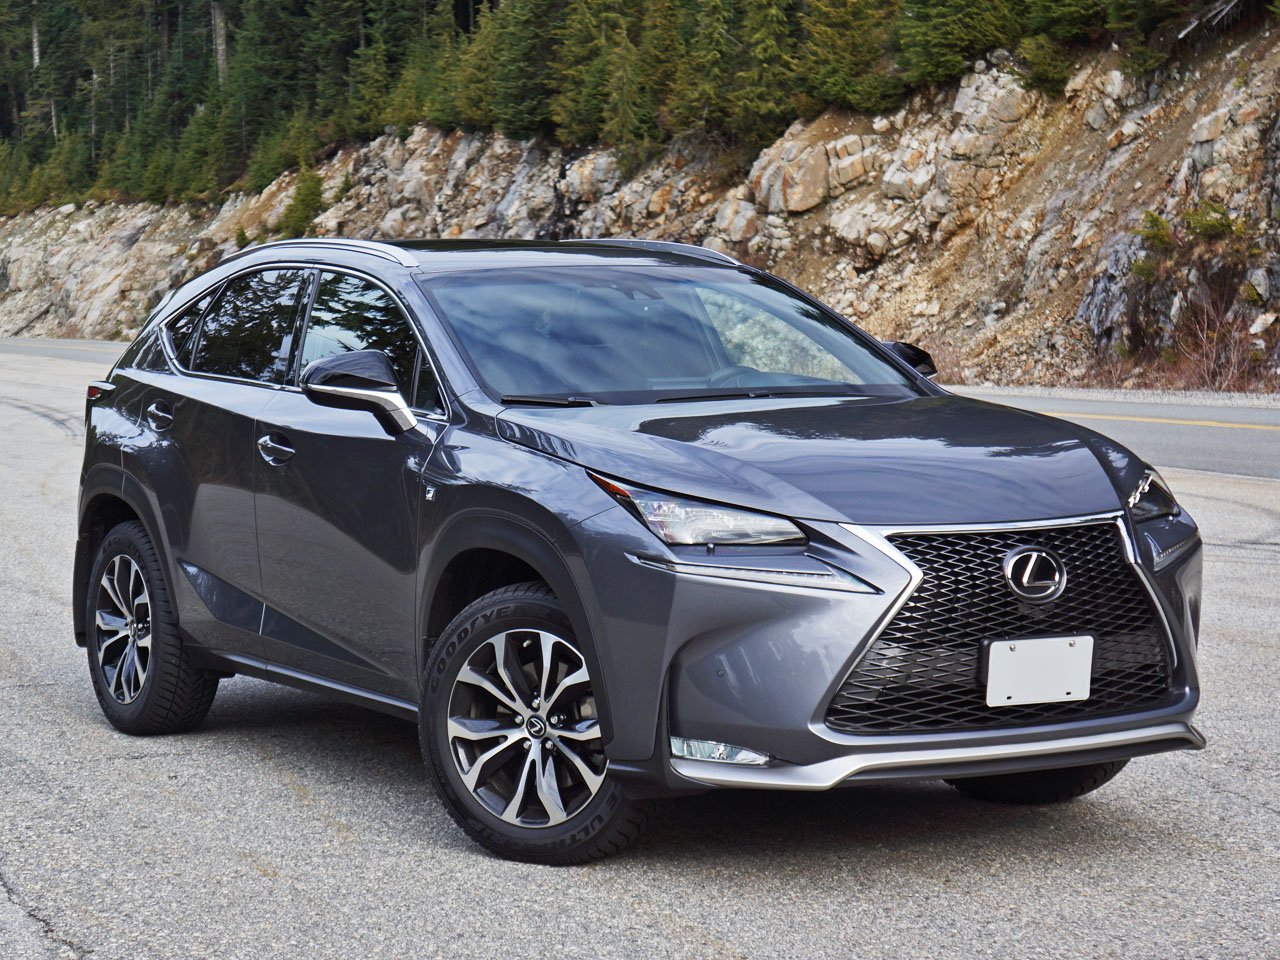 2015 lexus nx 200t f sport road test review carcostcanada. Black Bedroom Furniture Sets. Home Design Ideas